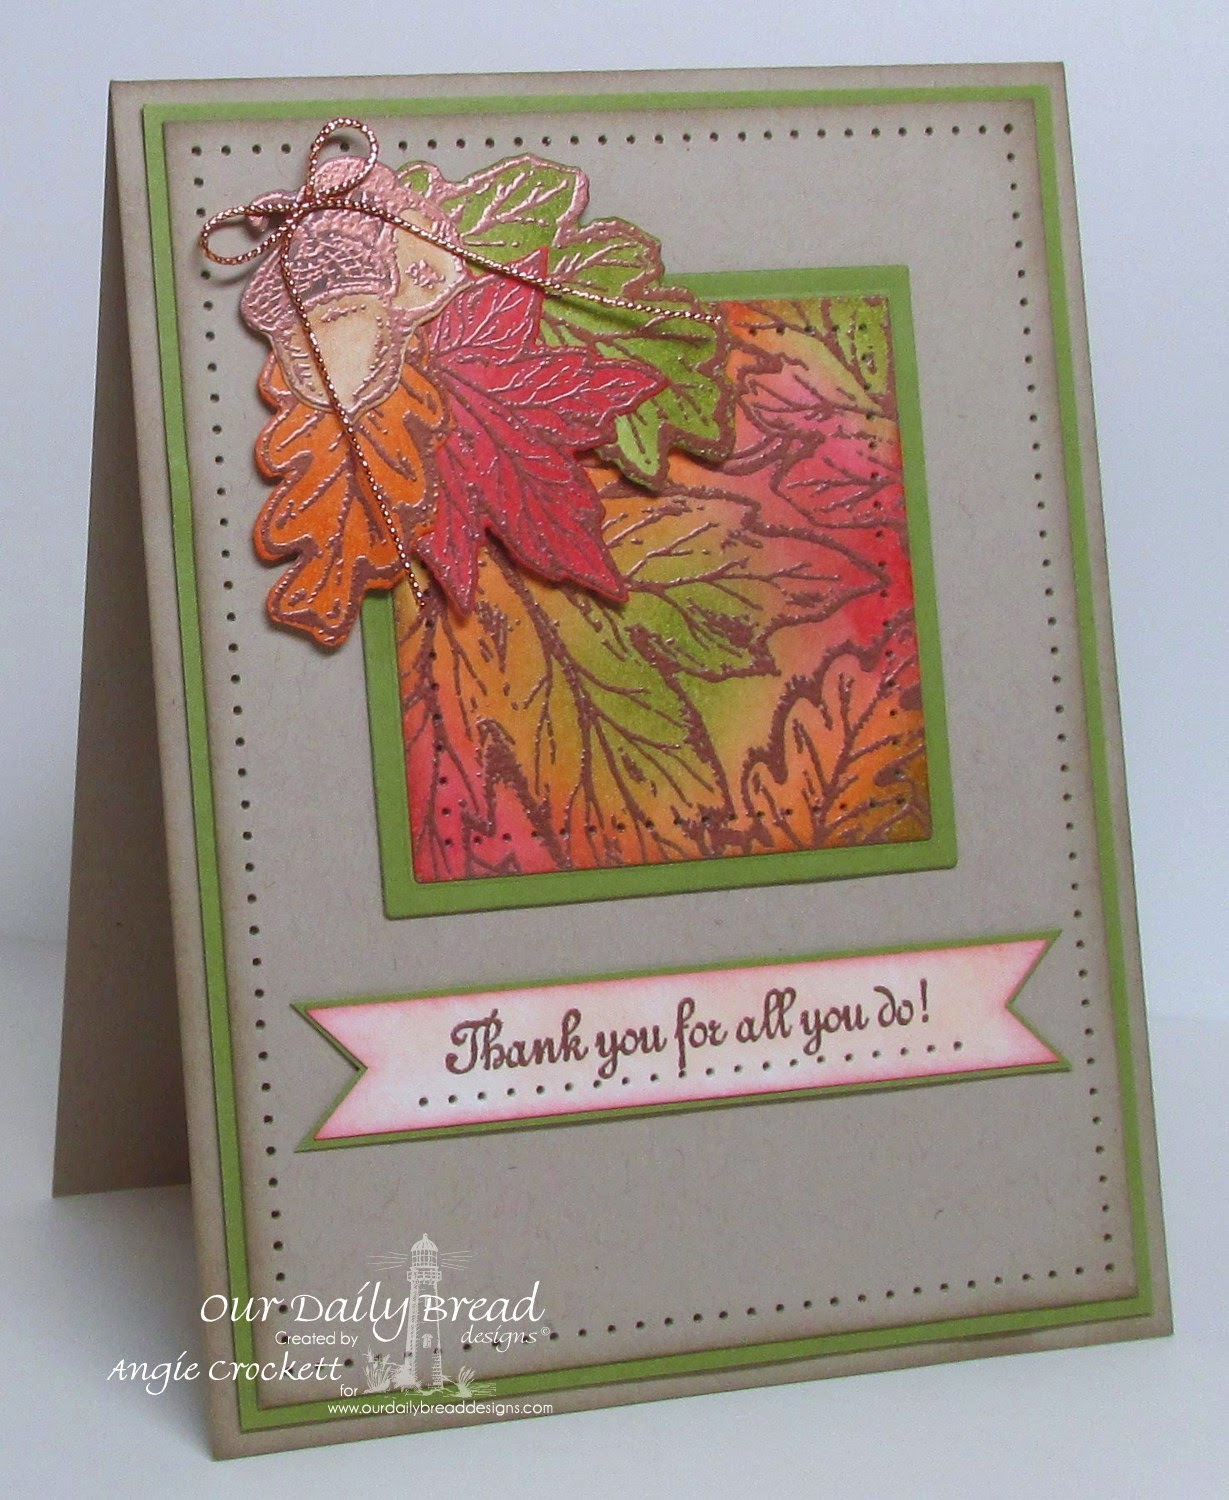 ODBD Autumn Blessings, ODBD Leaves Background, ODBD Custom Leaves and Acorn Dies, Serve The Lord, Card Designer Angie Crockett